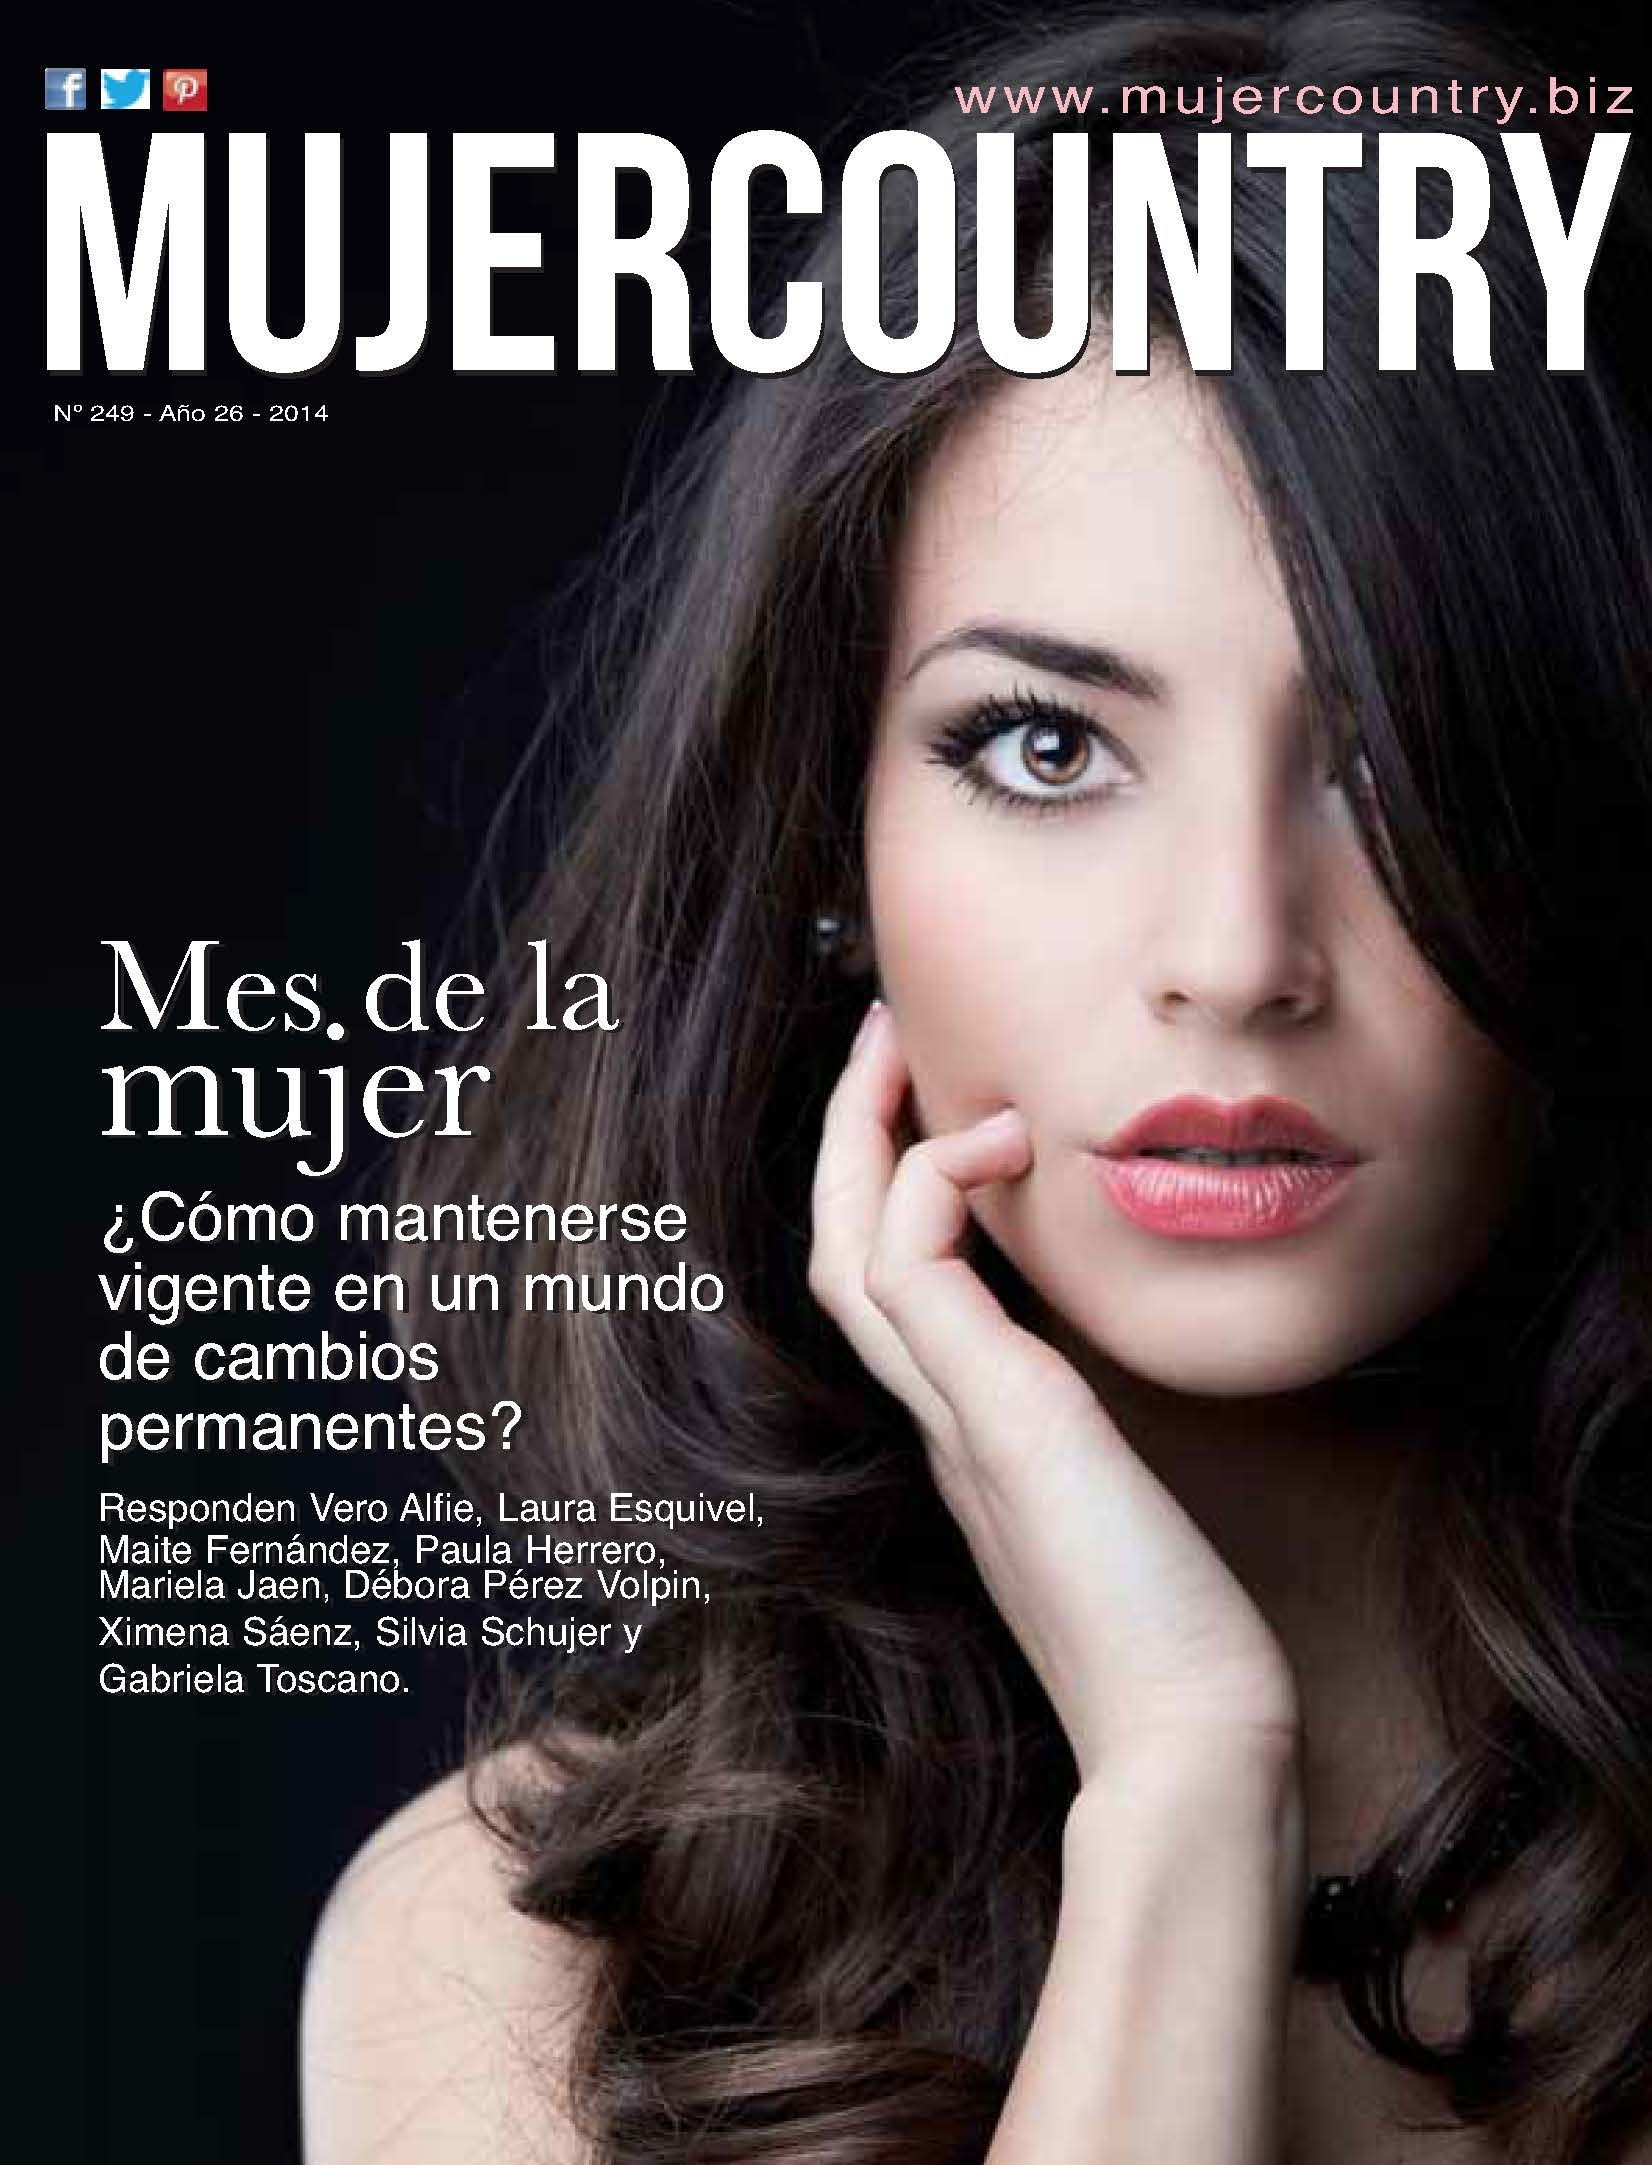 Mujer Country Nº 249 - Marzo 2014